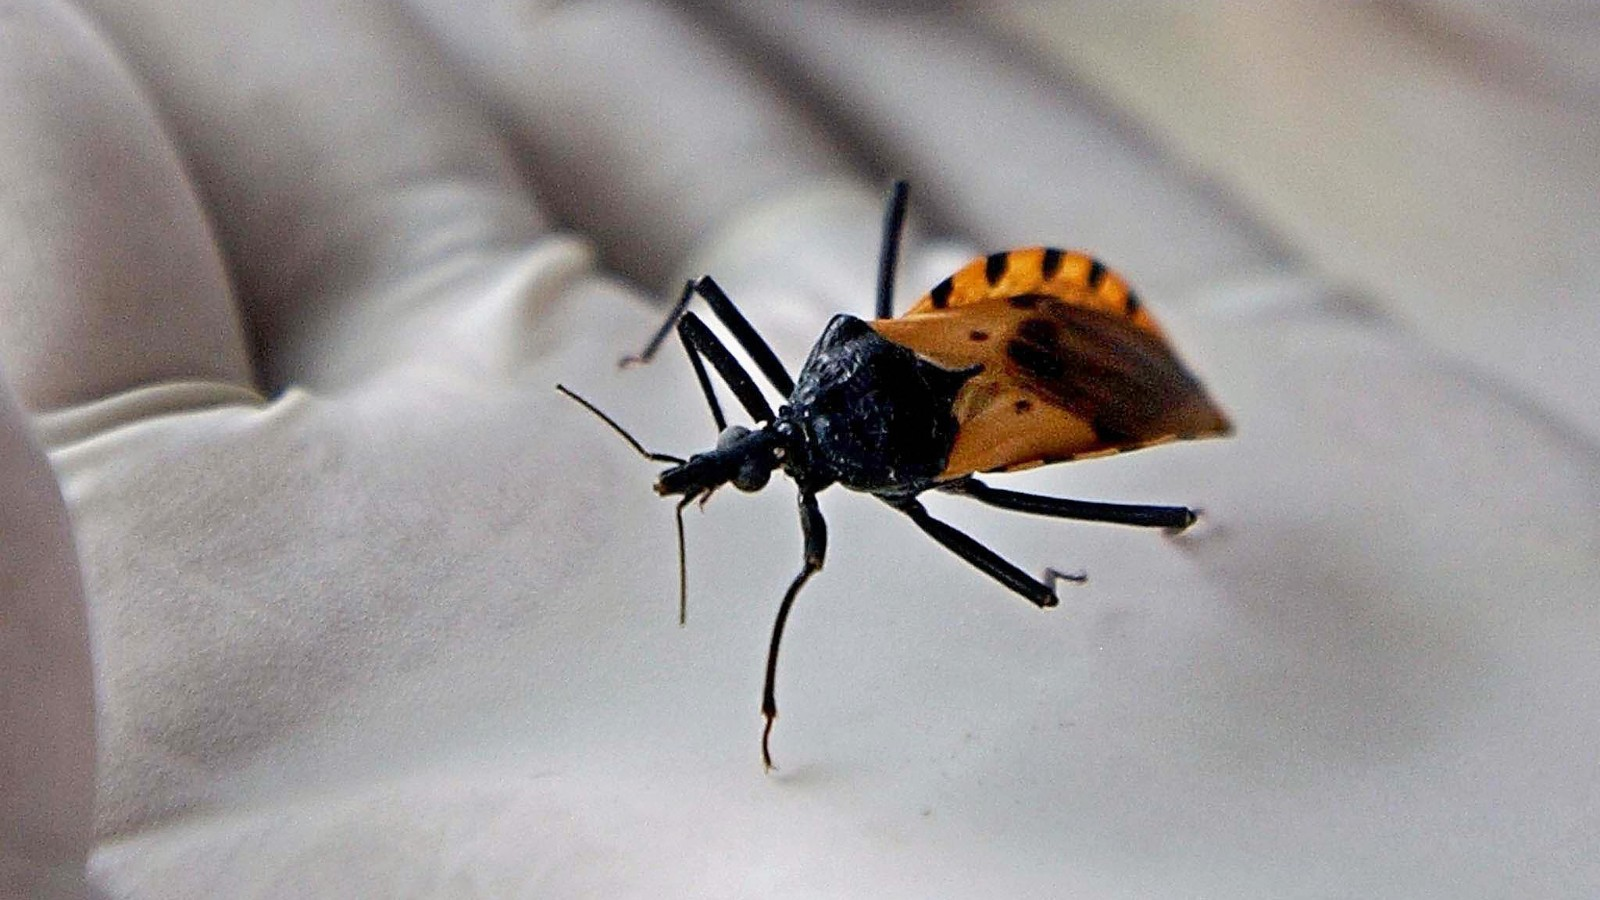 Kissing bug' disease more deadly than thought - CNN